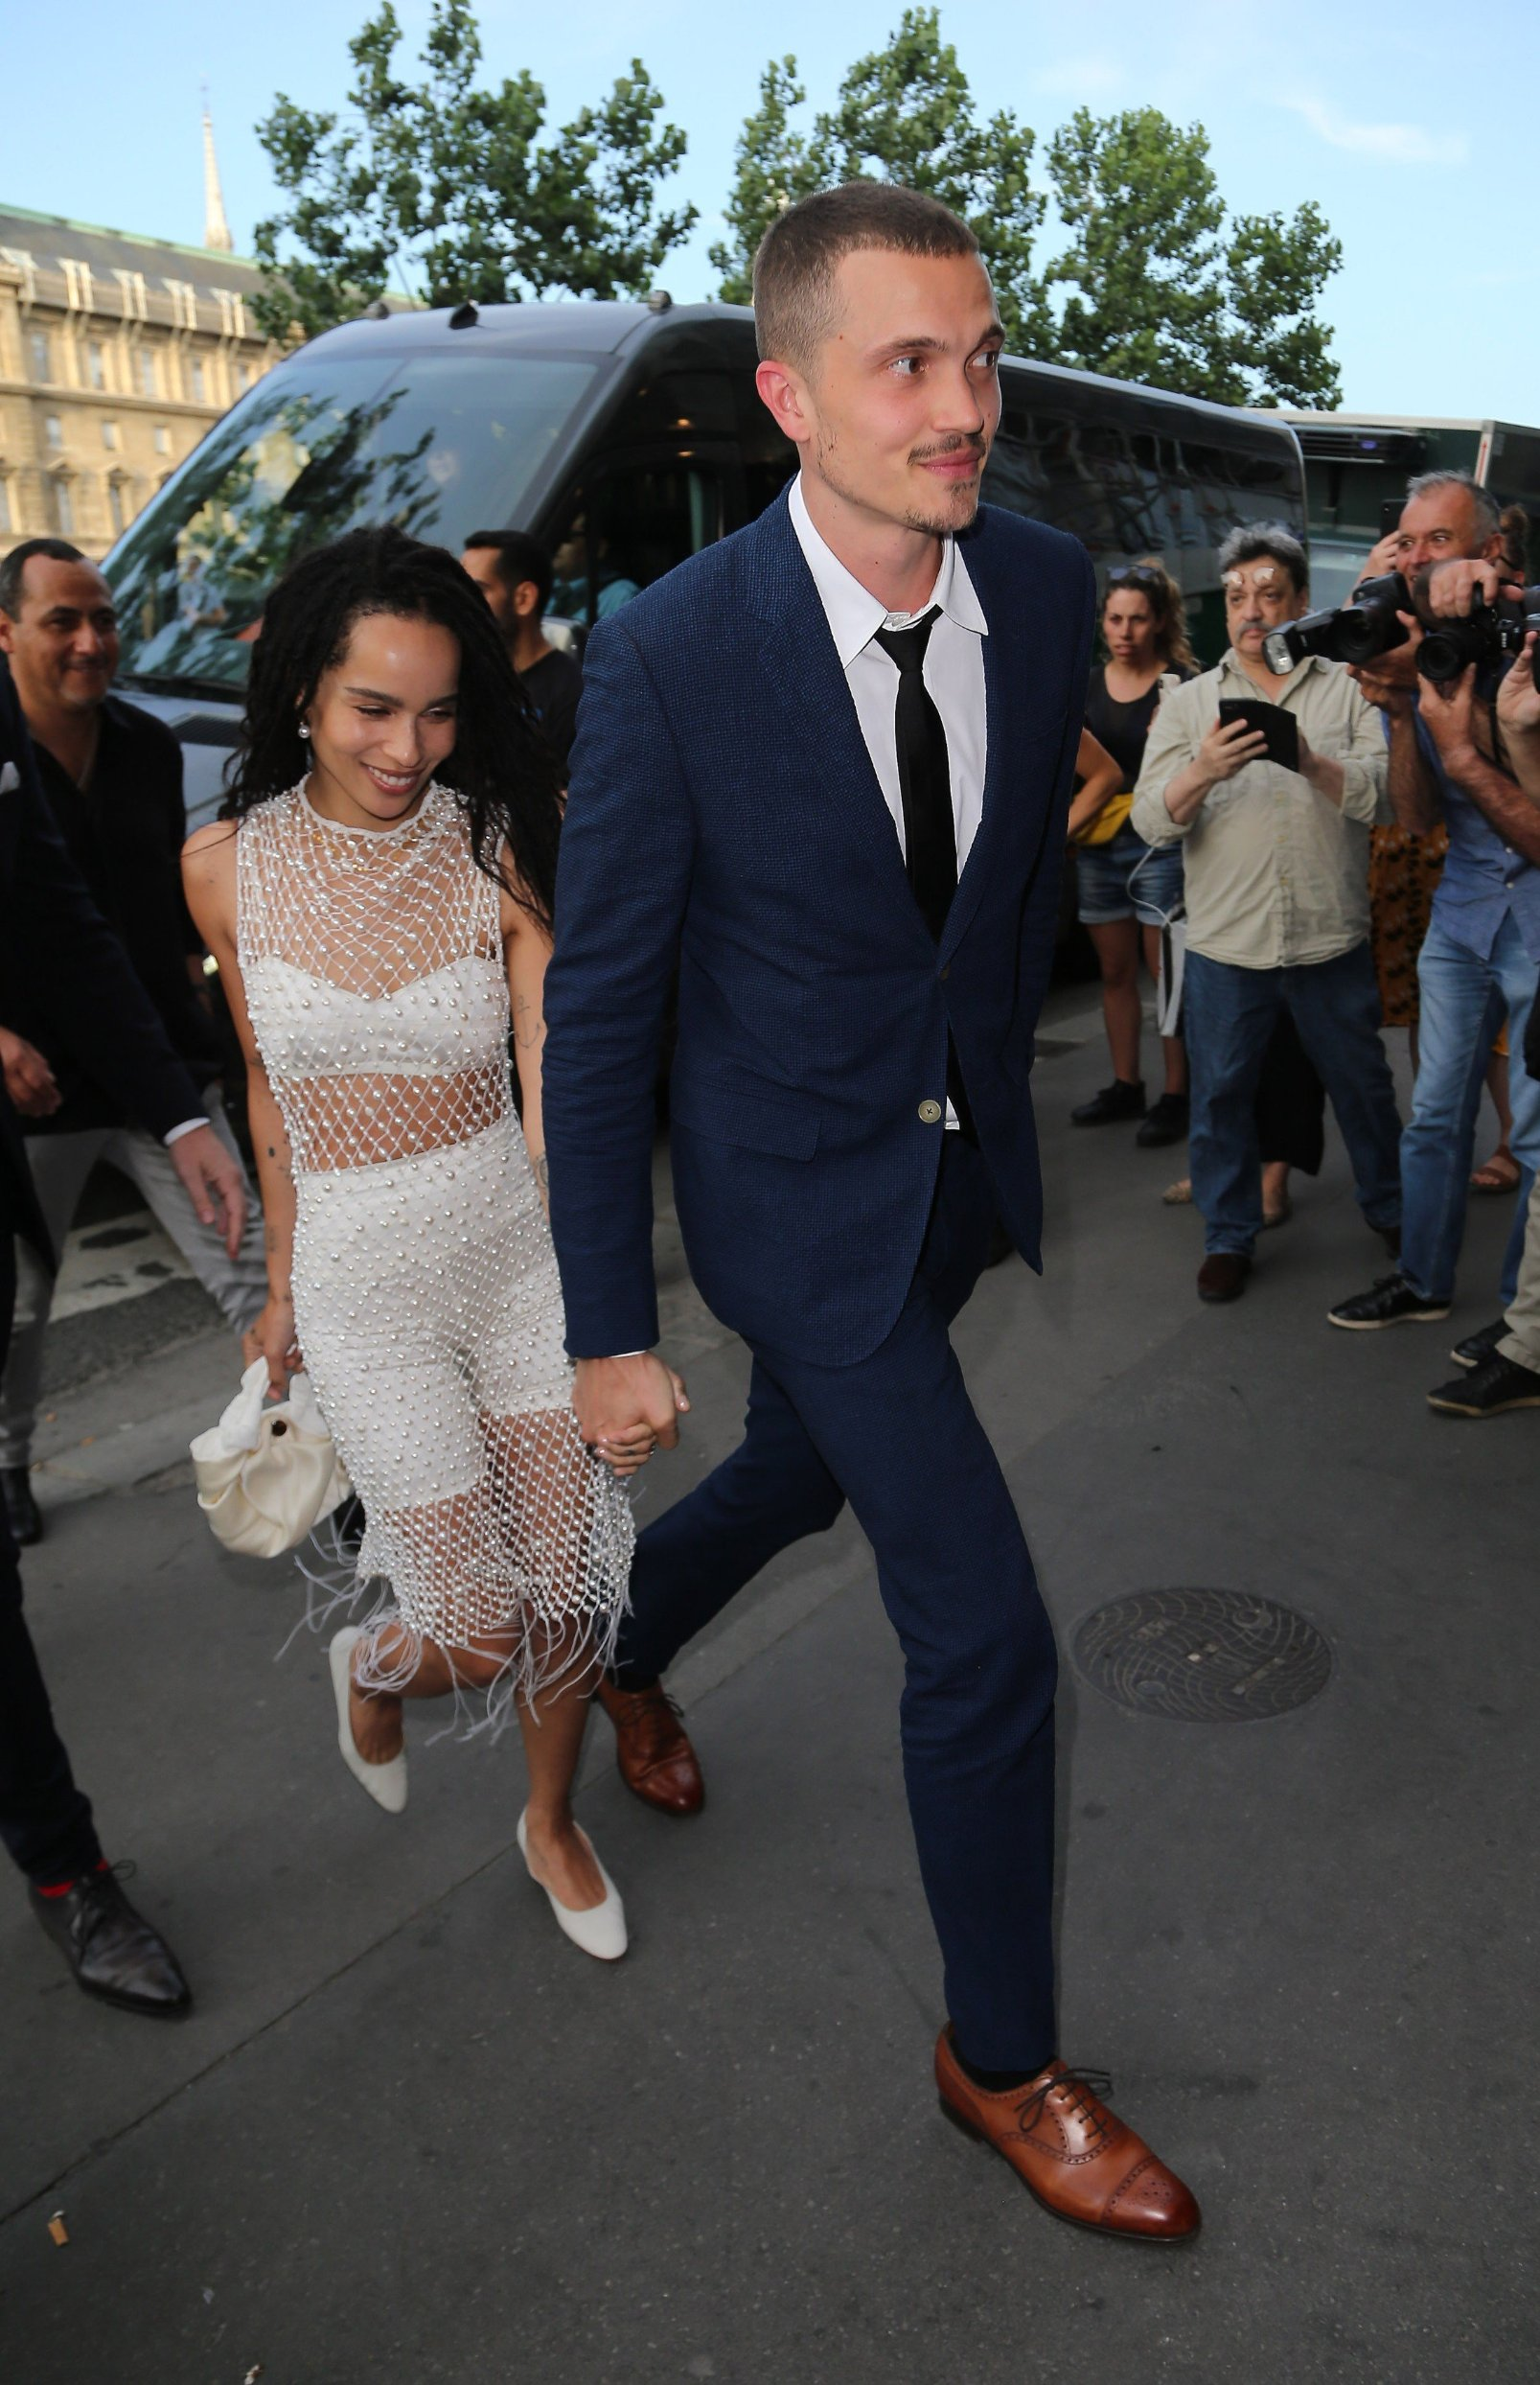 Zoe Kravitz and Karl Glusman attend pre wedding party at french restaurant Laperouse in Paris, France on June 28th 2019, Image: 452246196, License: Rights-managed, Restrictions: , Model Release: no, Credit line: Profimedia, KCS Presse